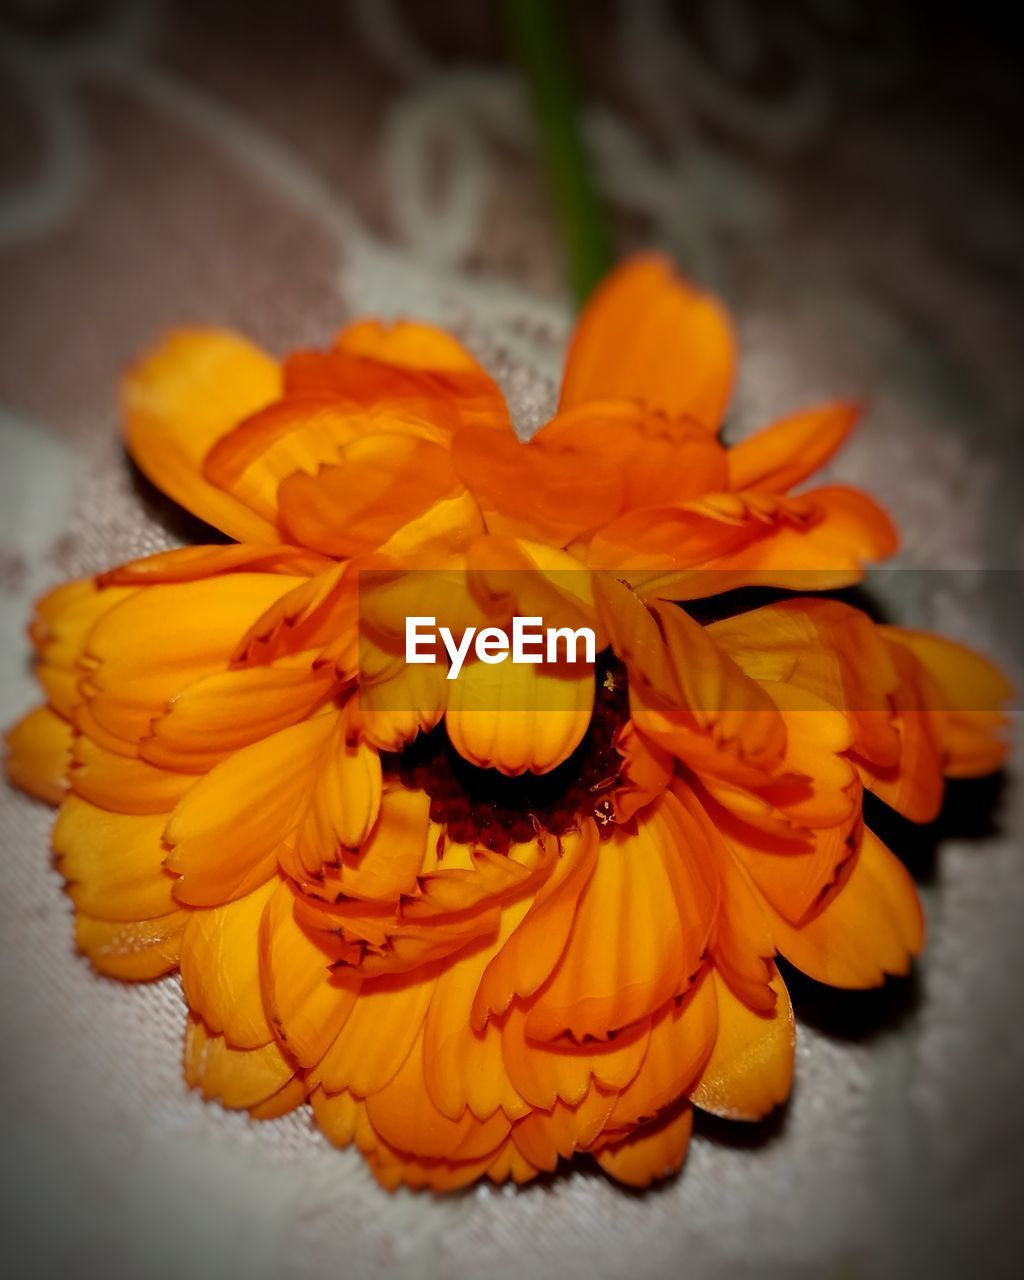 flower, petal, flower head, freshness, orange color, beauty in nature, fragility, yellow, nature, no people, close-up, marigold, indoors, day, hibiscus